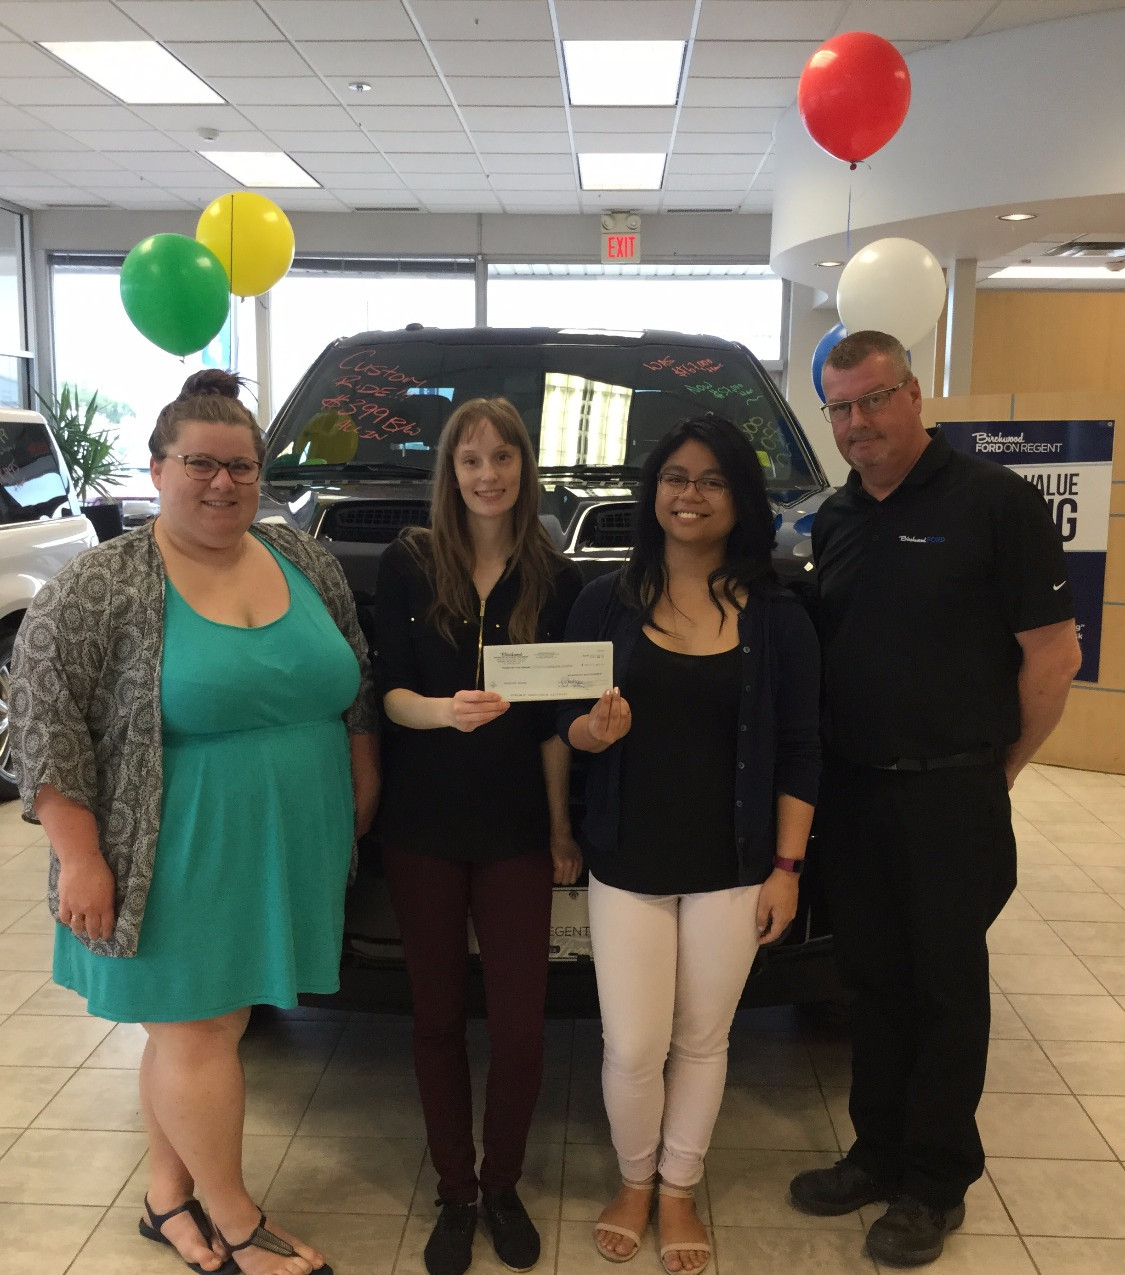 Summer Programming Assistants Tiffany Lepla and Janelle Linsangan with Jim Dolphin and Birchwood Ford staff member